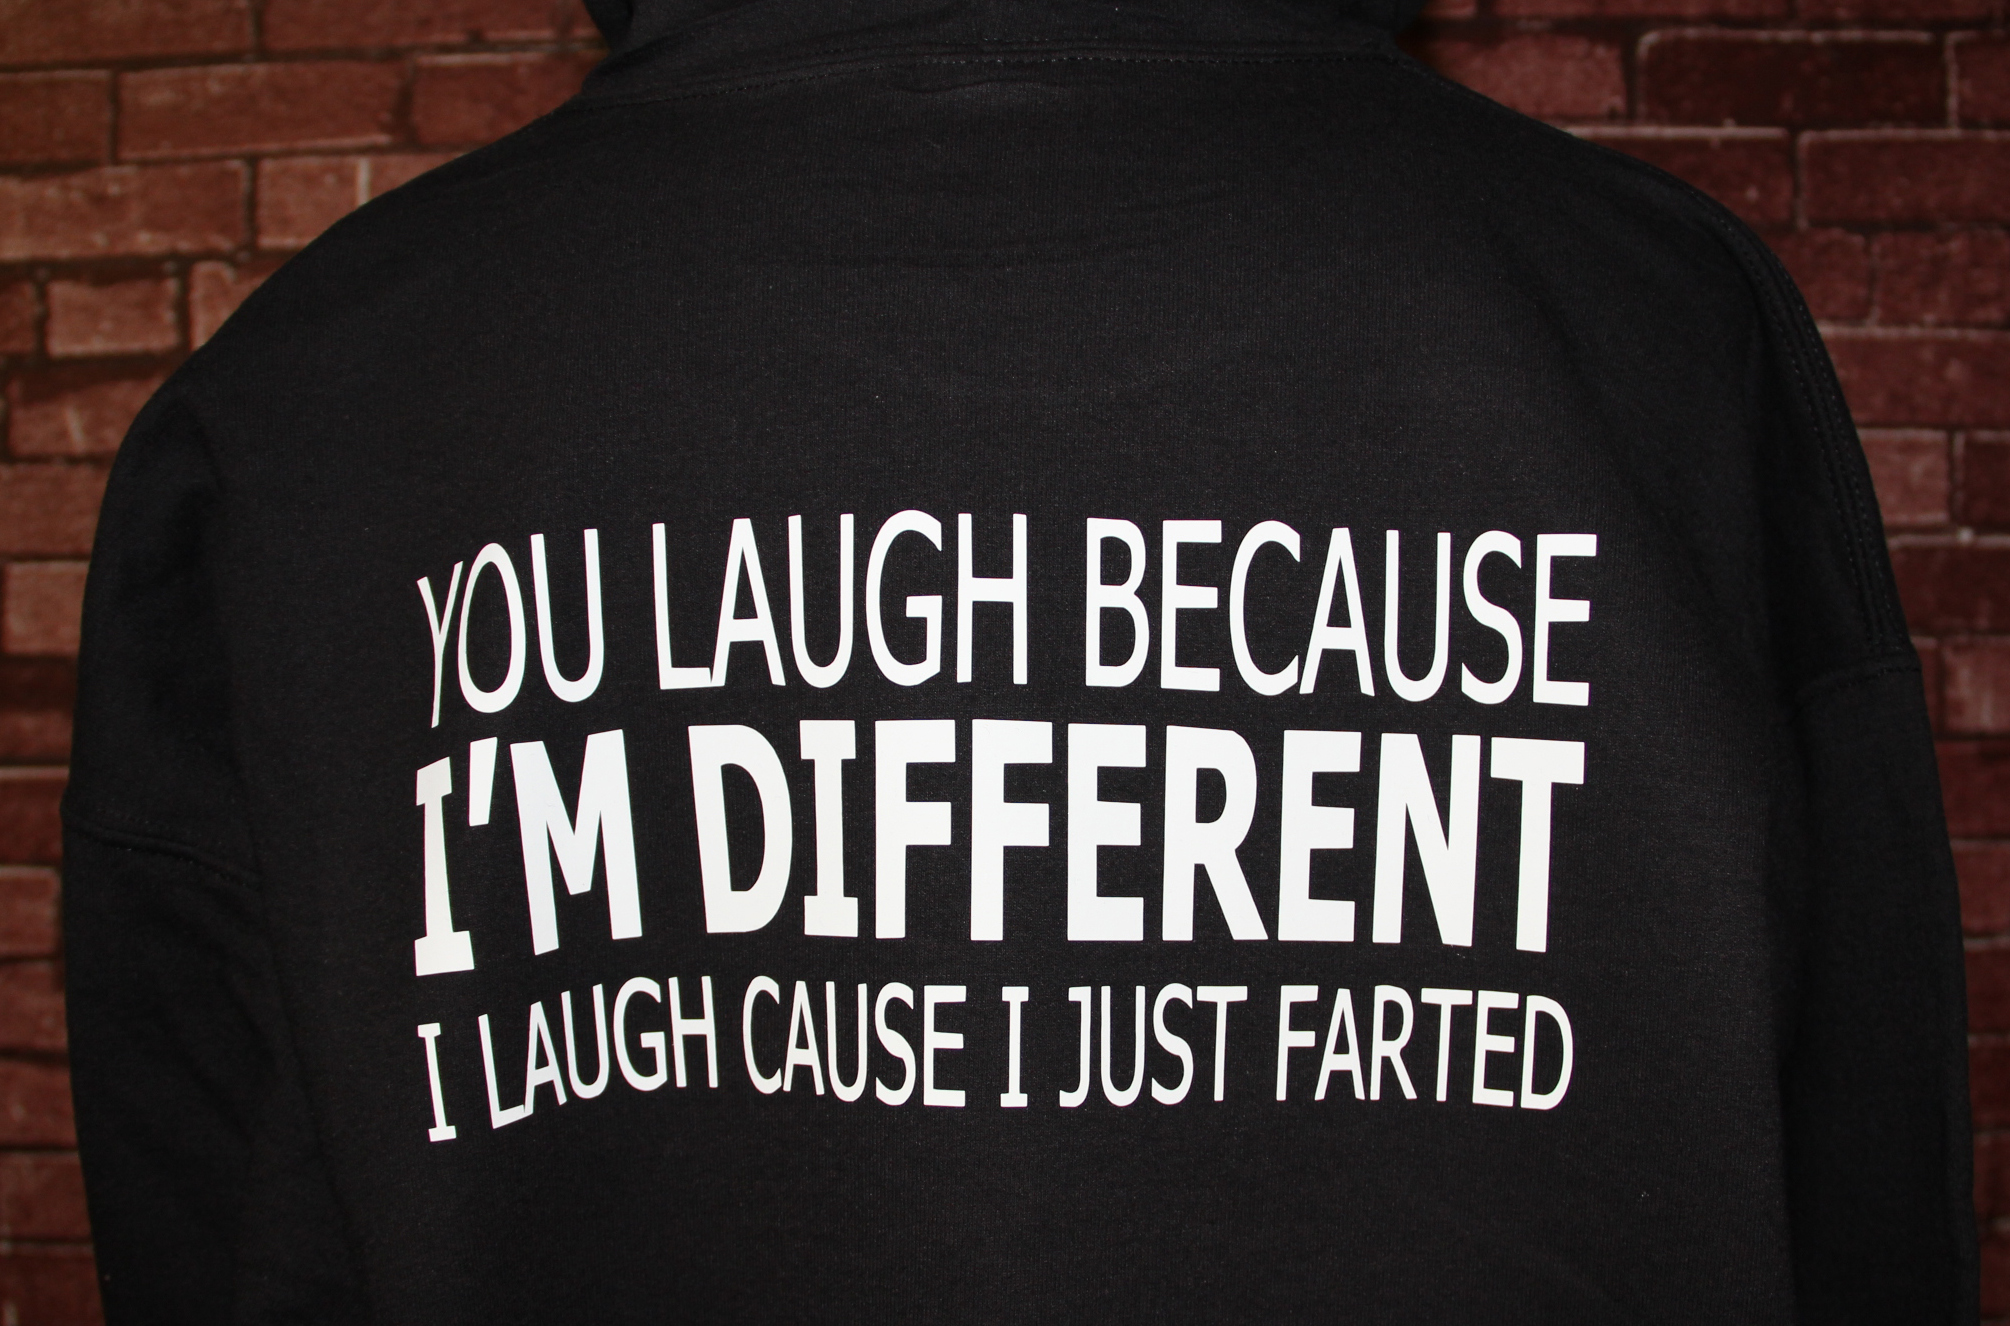 you-laugh-because-im-different-i-laugh-cause-i-just-farted-shirt.jpg